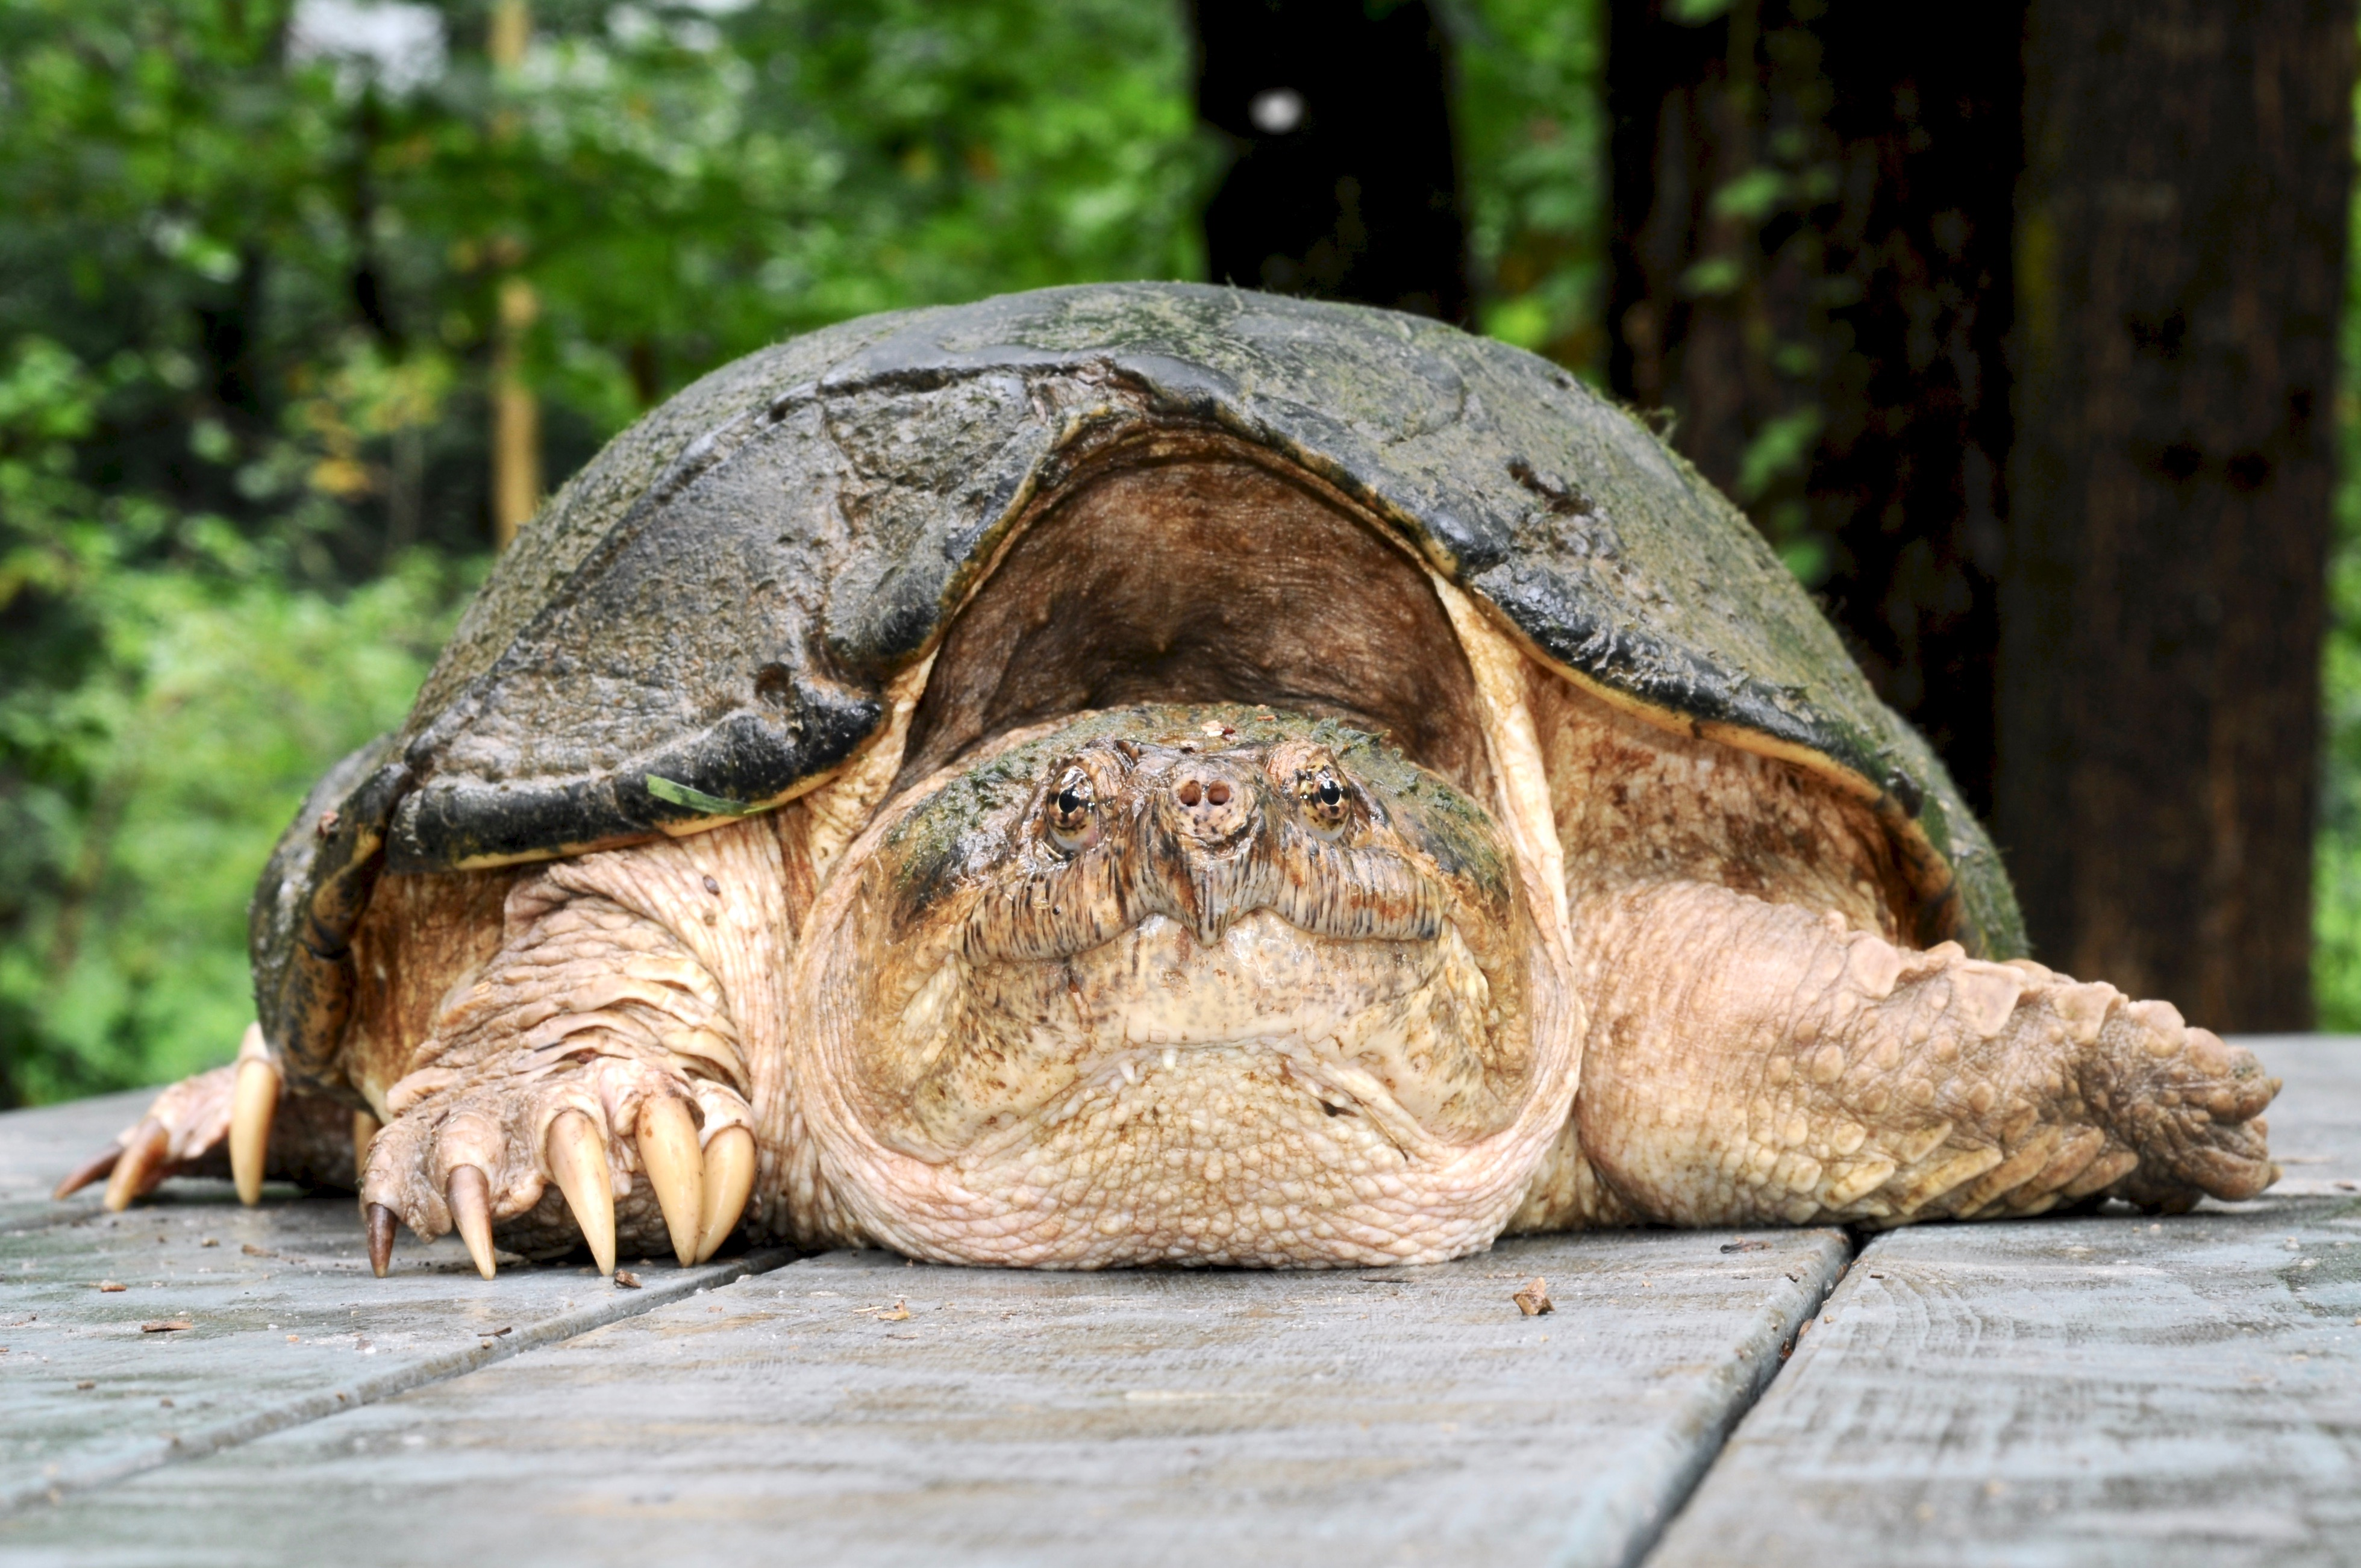 Common Snapping Turtle 126